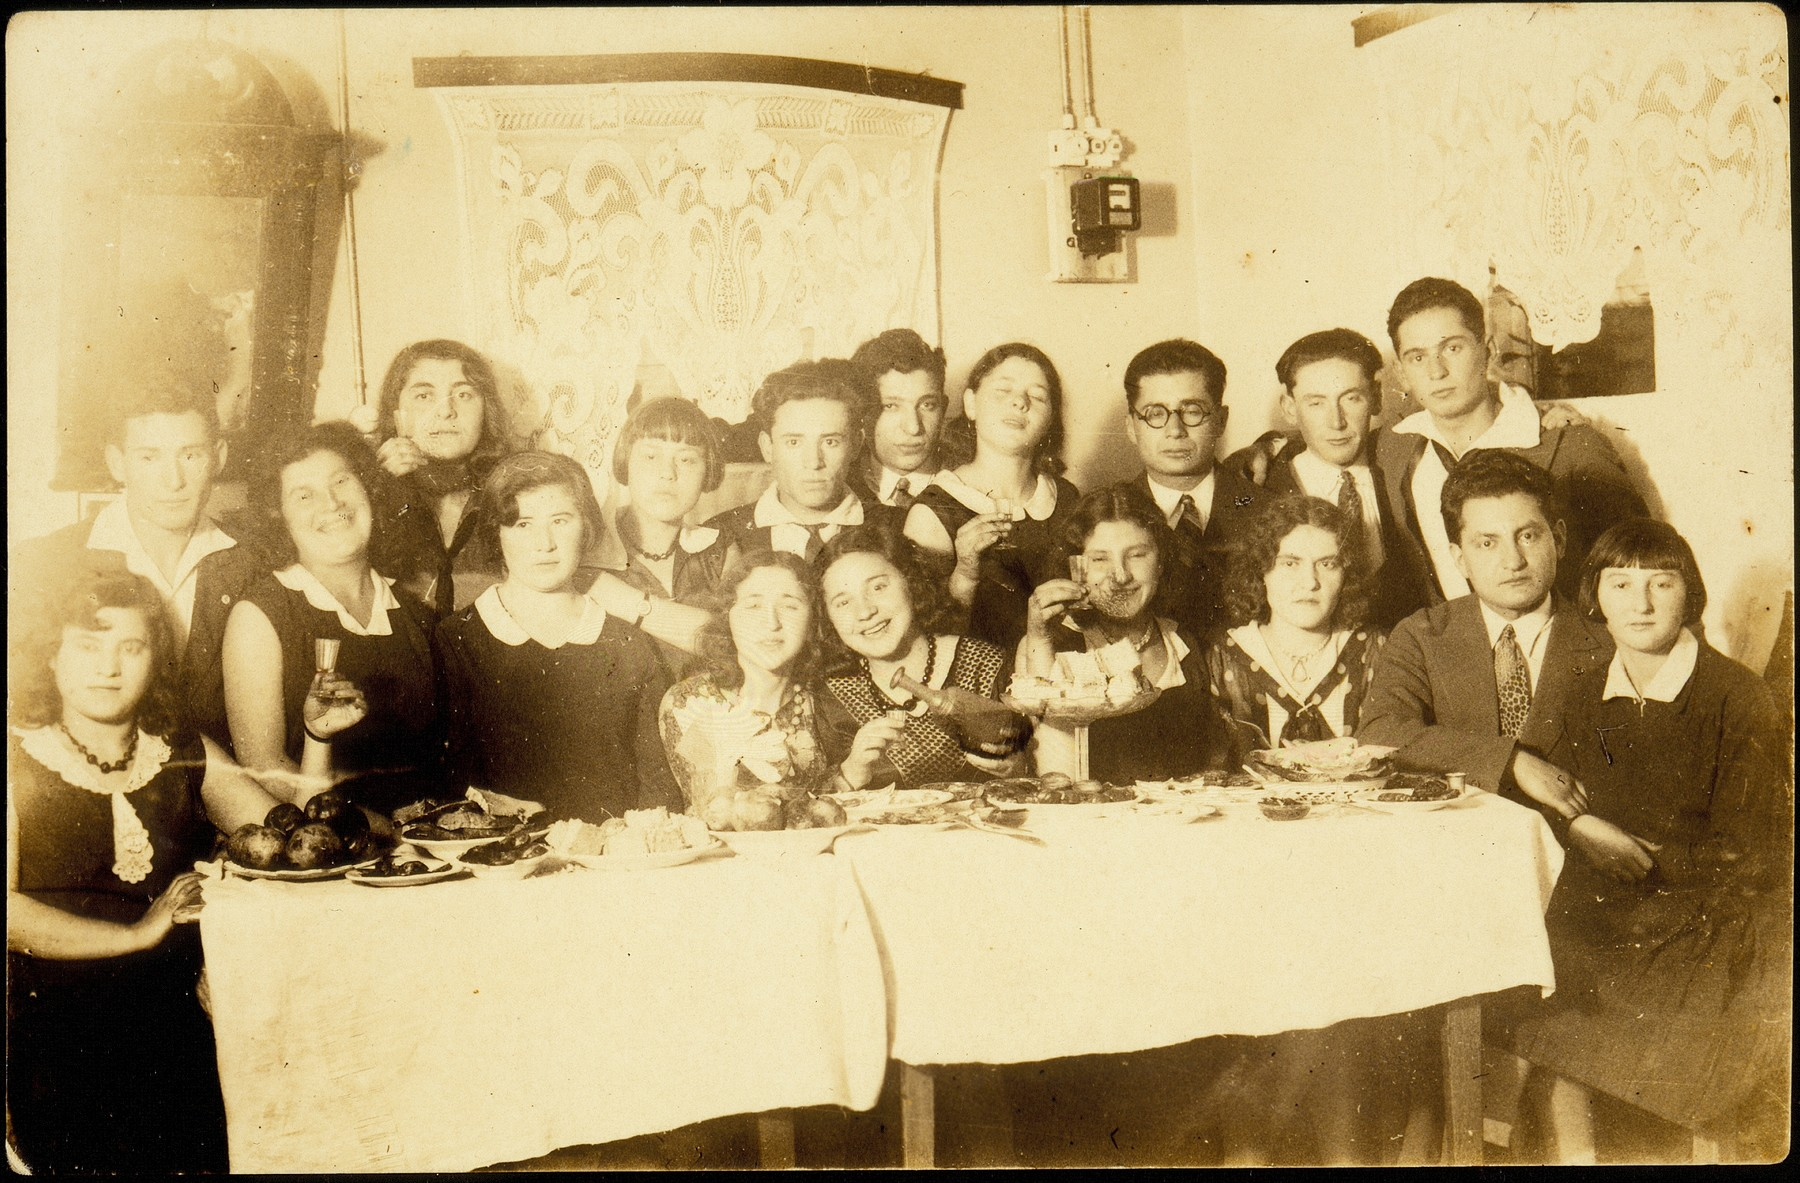 Young Jewish men and women pose around a table during a Saturday night party.    Pictured standing from right to left are: Dov Wilenski, Shmuel Berkowicz, Avraham Politacki, unknown, Muni Zahavi, Motke Burstein, unknown and Rina Lewinson.  Sitting from right to left are: Esther Katz, Simha Kaleko, Flora Kagan, unknown, unknown, unknown, unknown, Miriam Koppelman, unknown, unknown.  Those who survived the war include Shmuel Berkowicz, Dov Wilenski, and Rina Lewinson who immigrated to Palestine, and Esther Katz, who immigrated to Colombia. Flora Kagan immigrated to the United States.